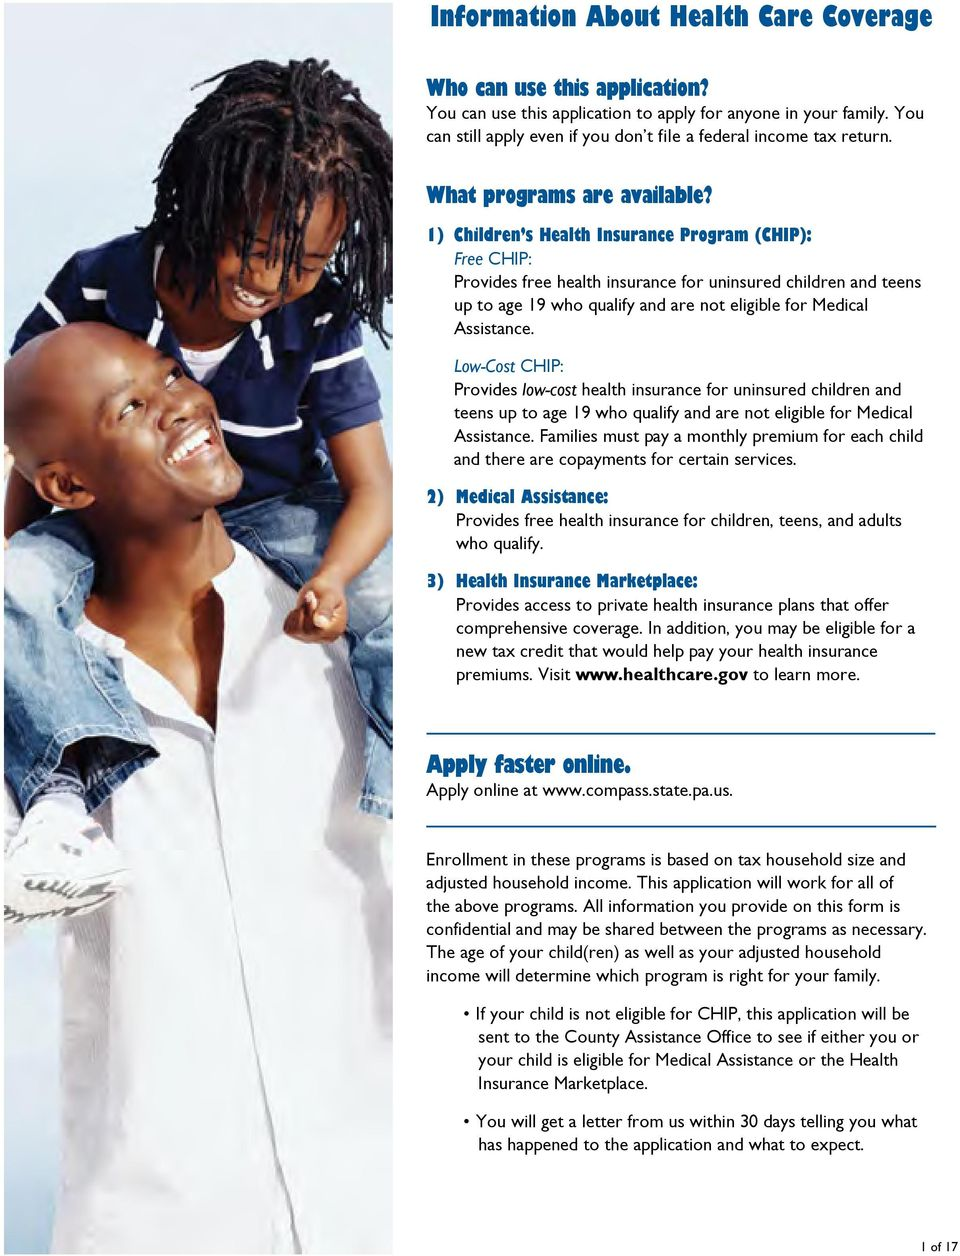 1) Children s Health Insurance Program (CHIP): Free CHIP: Provides free health insurance for uninsured children and teens up to age 19 who ualify and are not eligible for Medical Assistance.